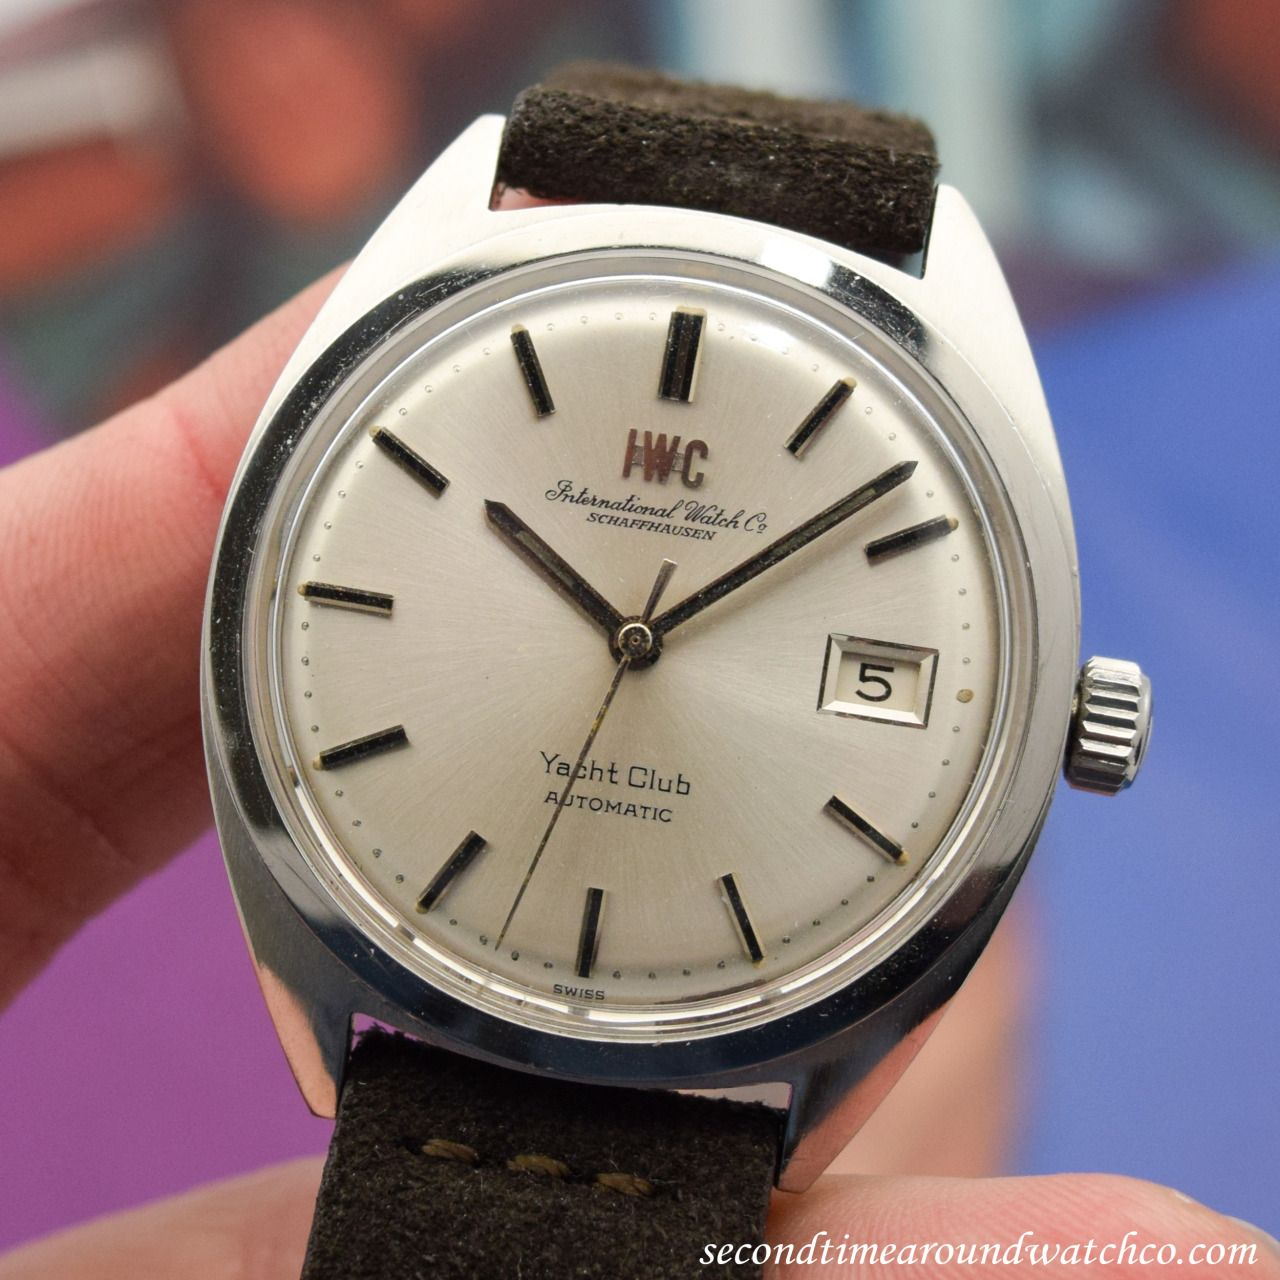 Here we have a 1970 IWC Yacht Club Ref. 811 in Stainless